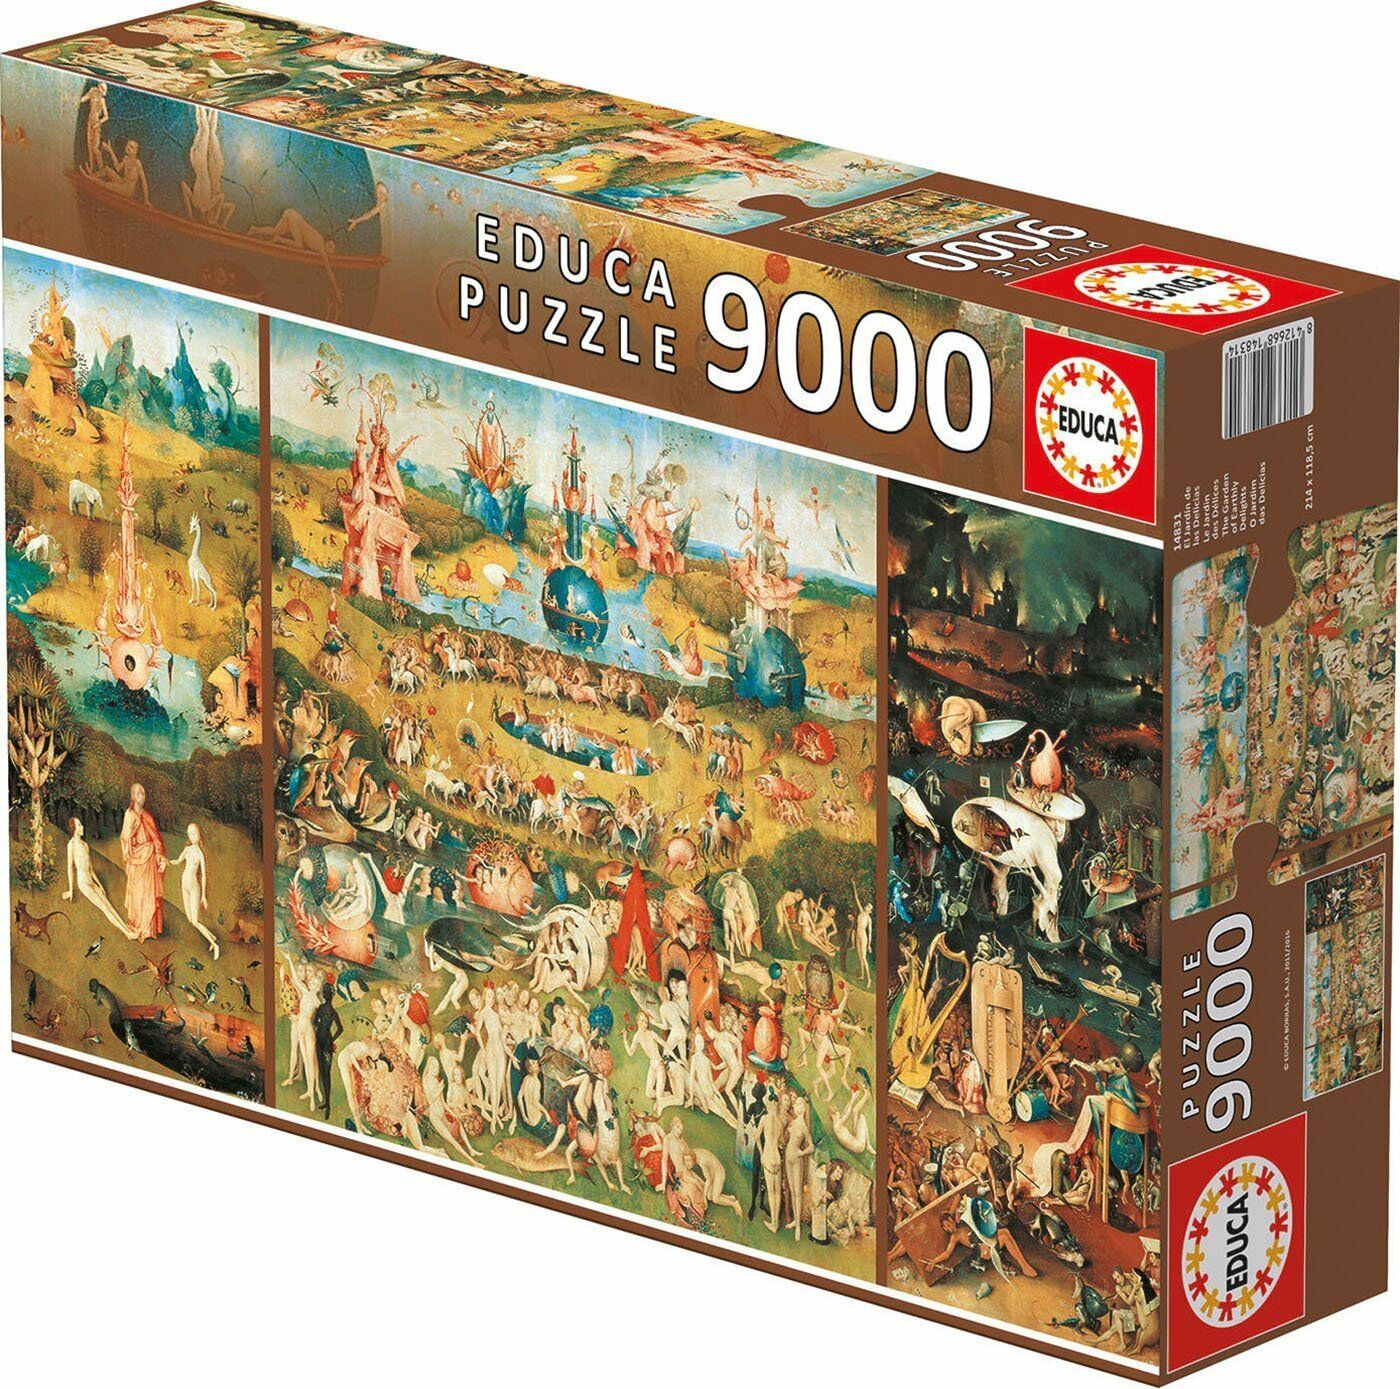 Educa 14831. El Garden of the delights. Puzzle of 9000 parts. 214x119cm